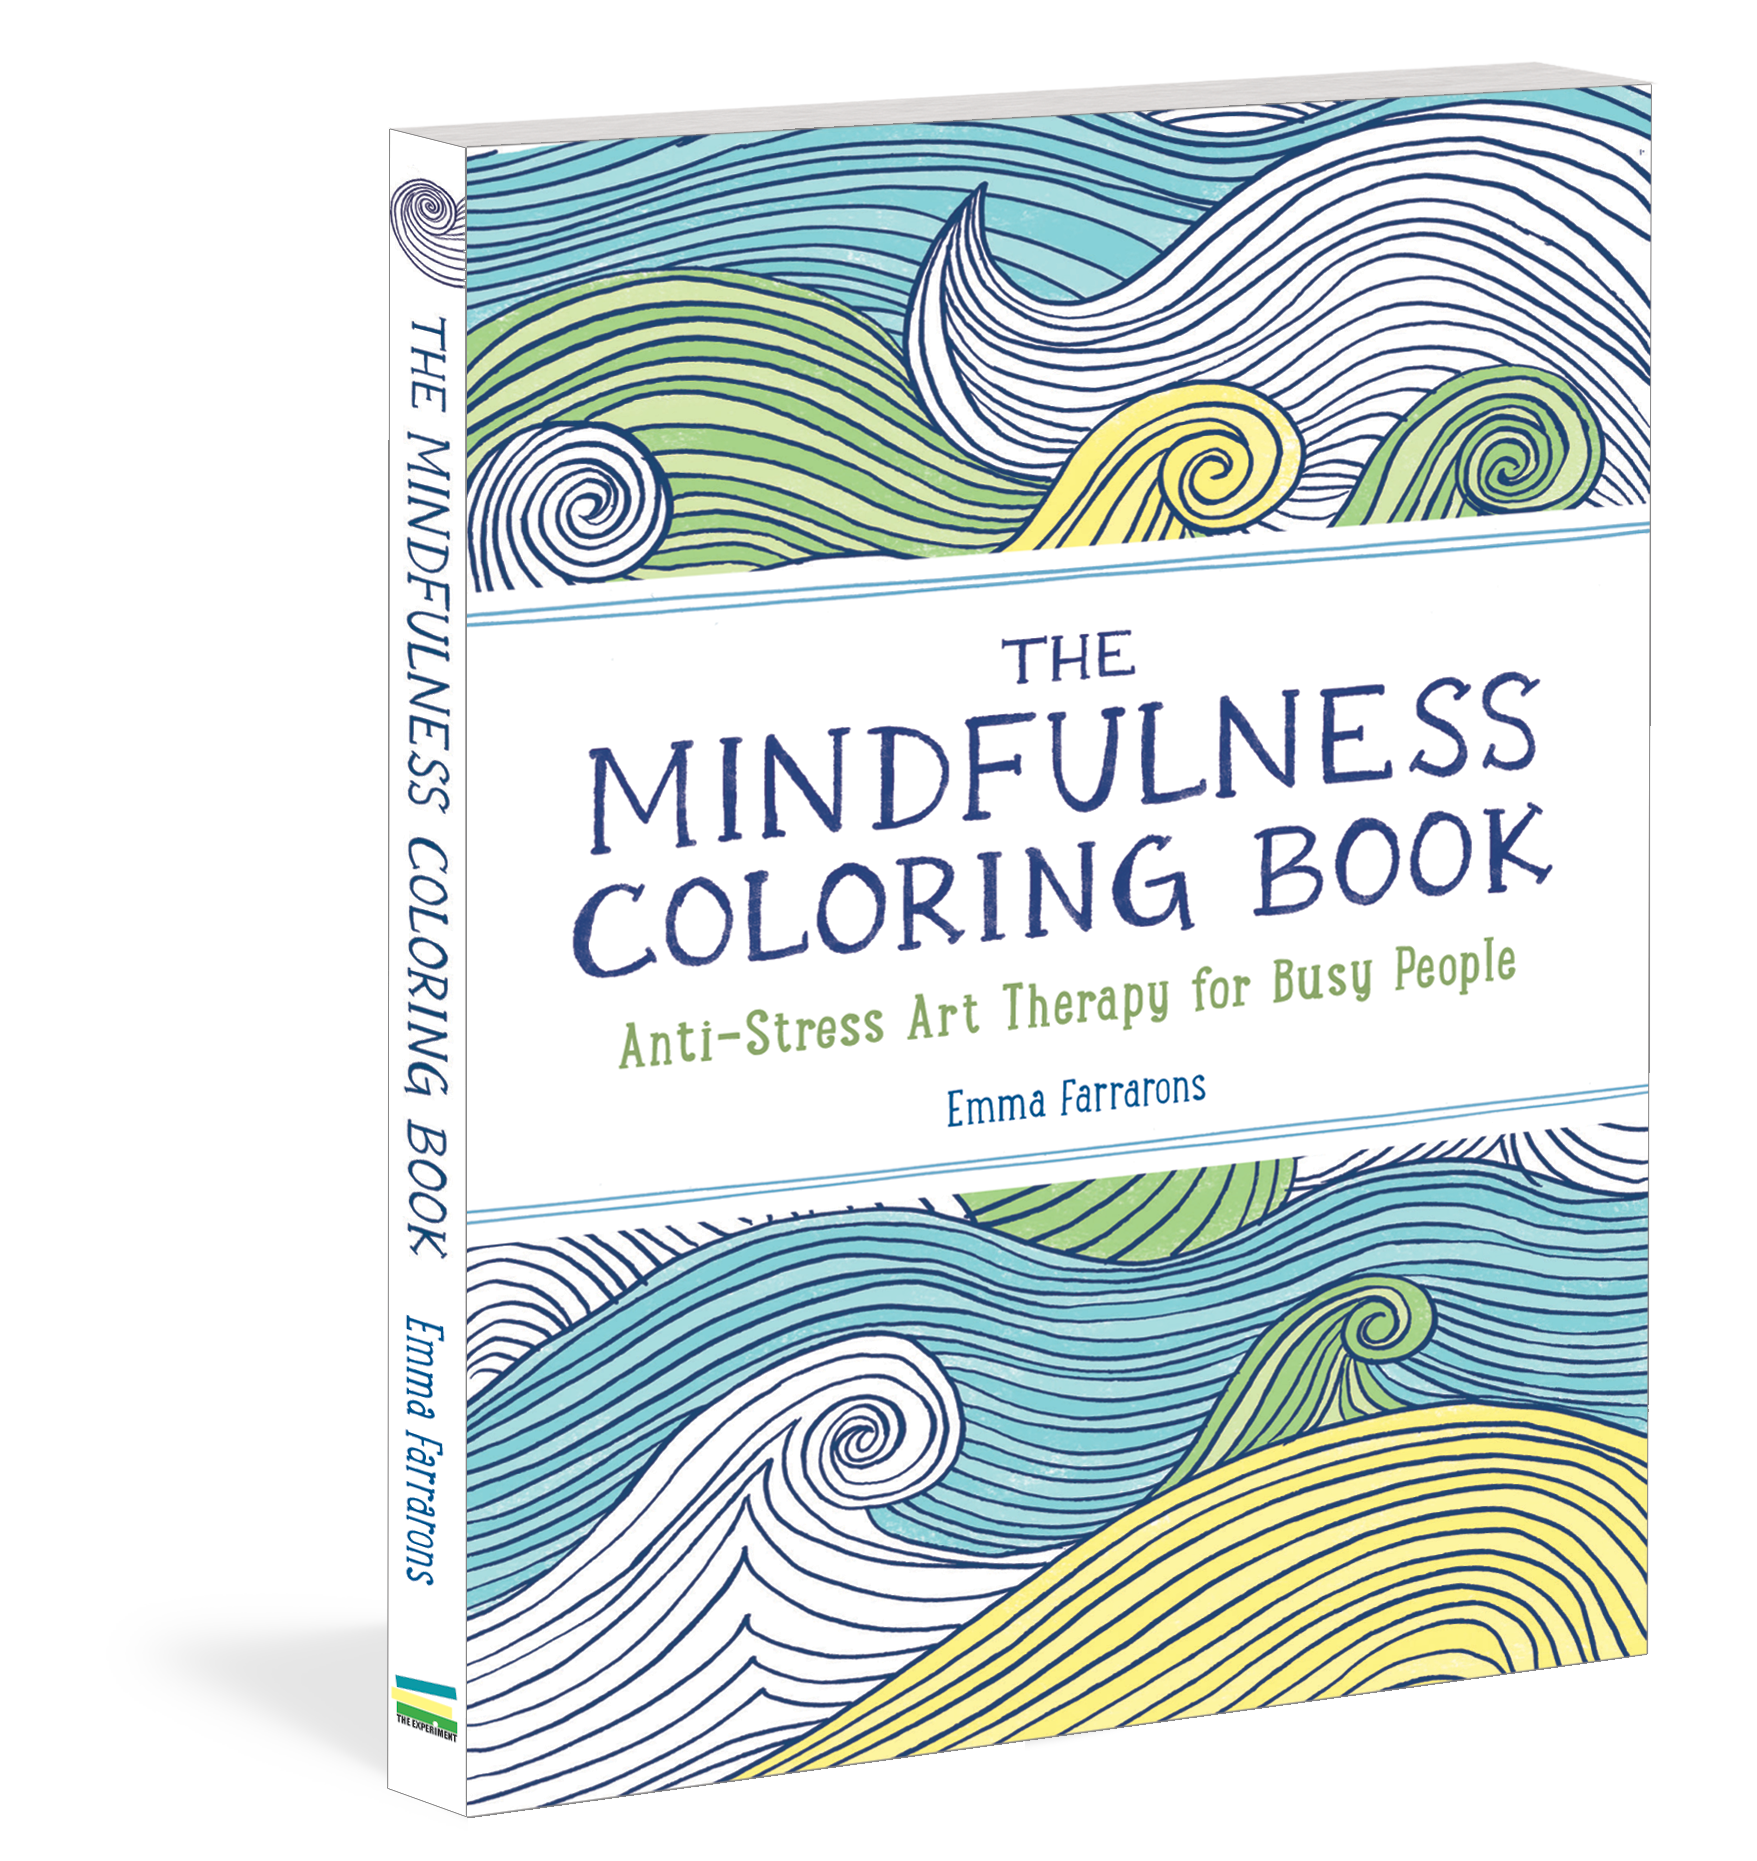 The Mindfulness Coloring Book - Workman Publishing